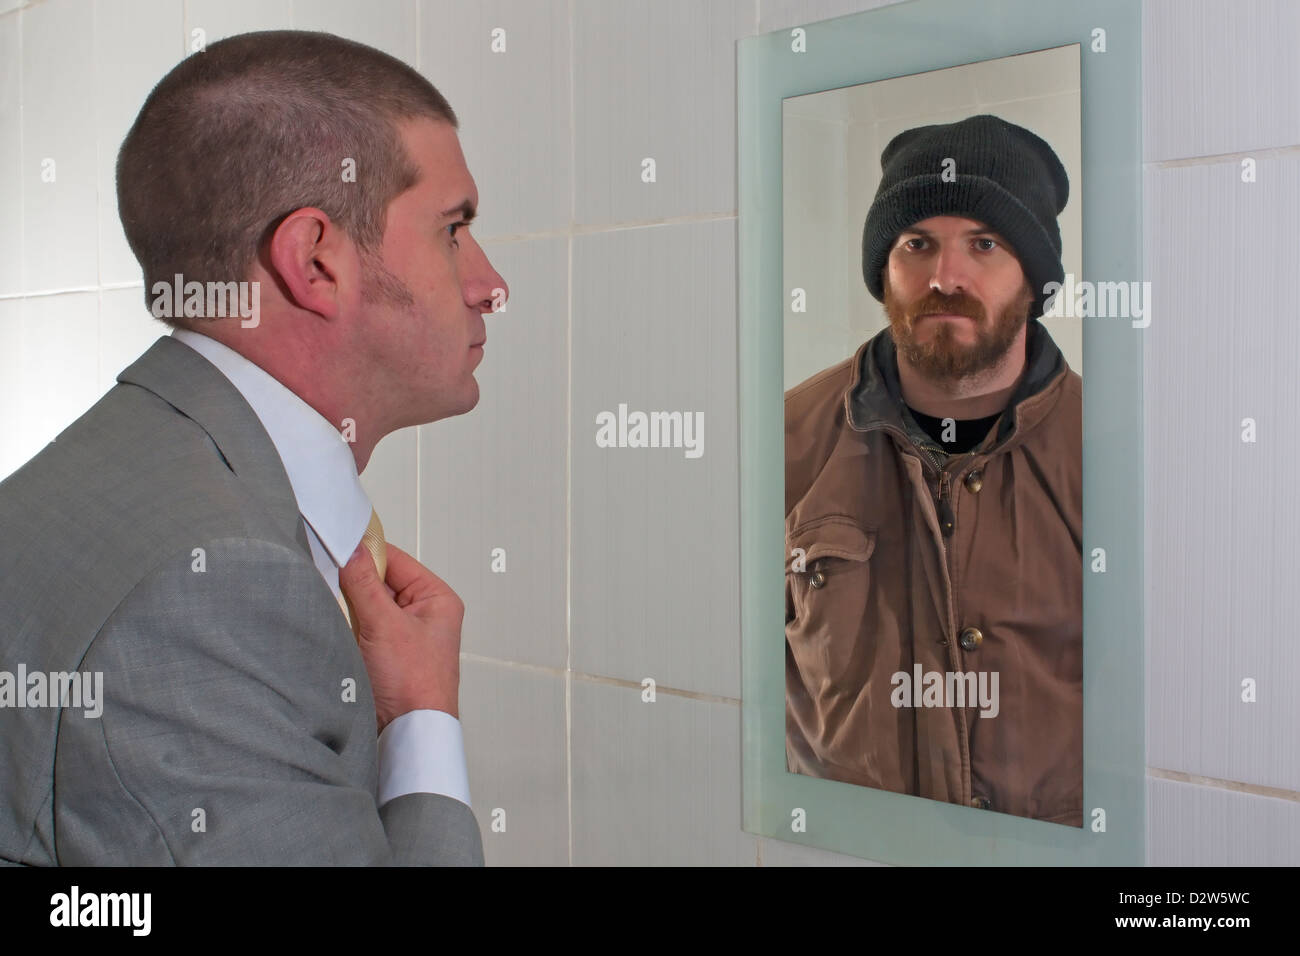 Business Man looking in the mirror and seeing a Tramp staring back in the reflection - Stock Image